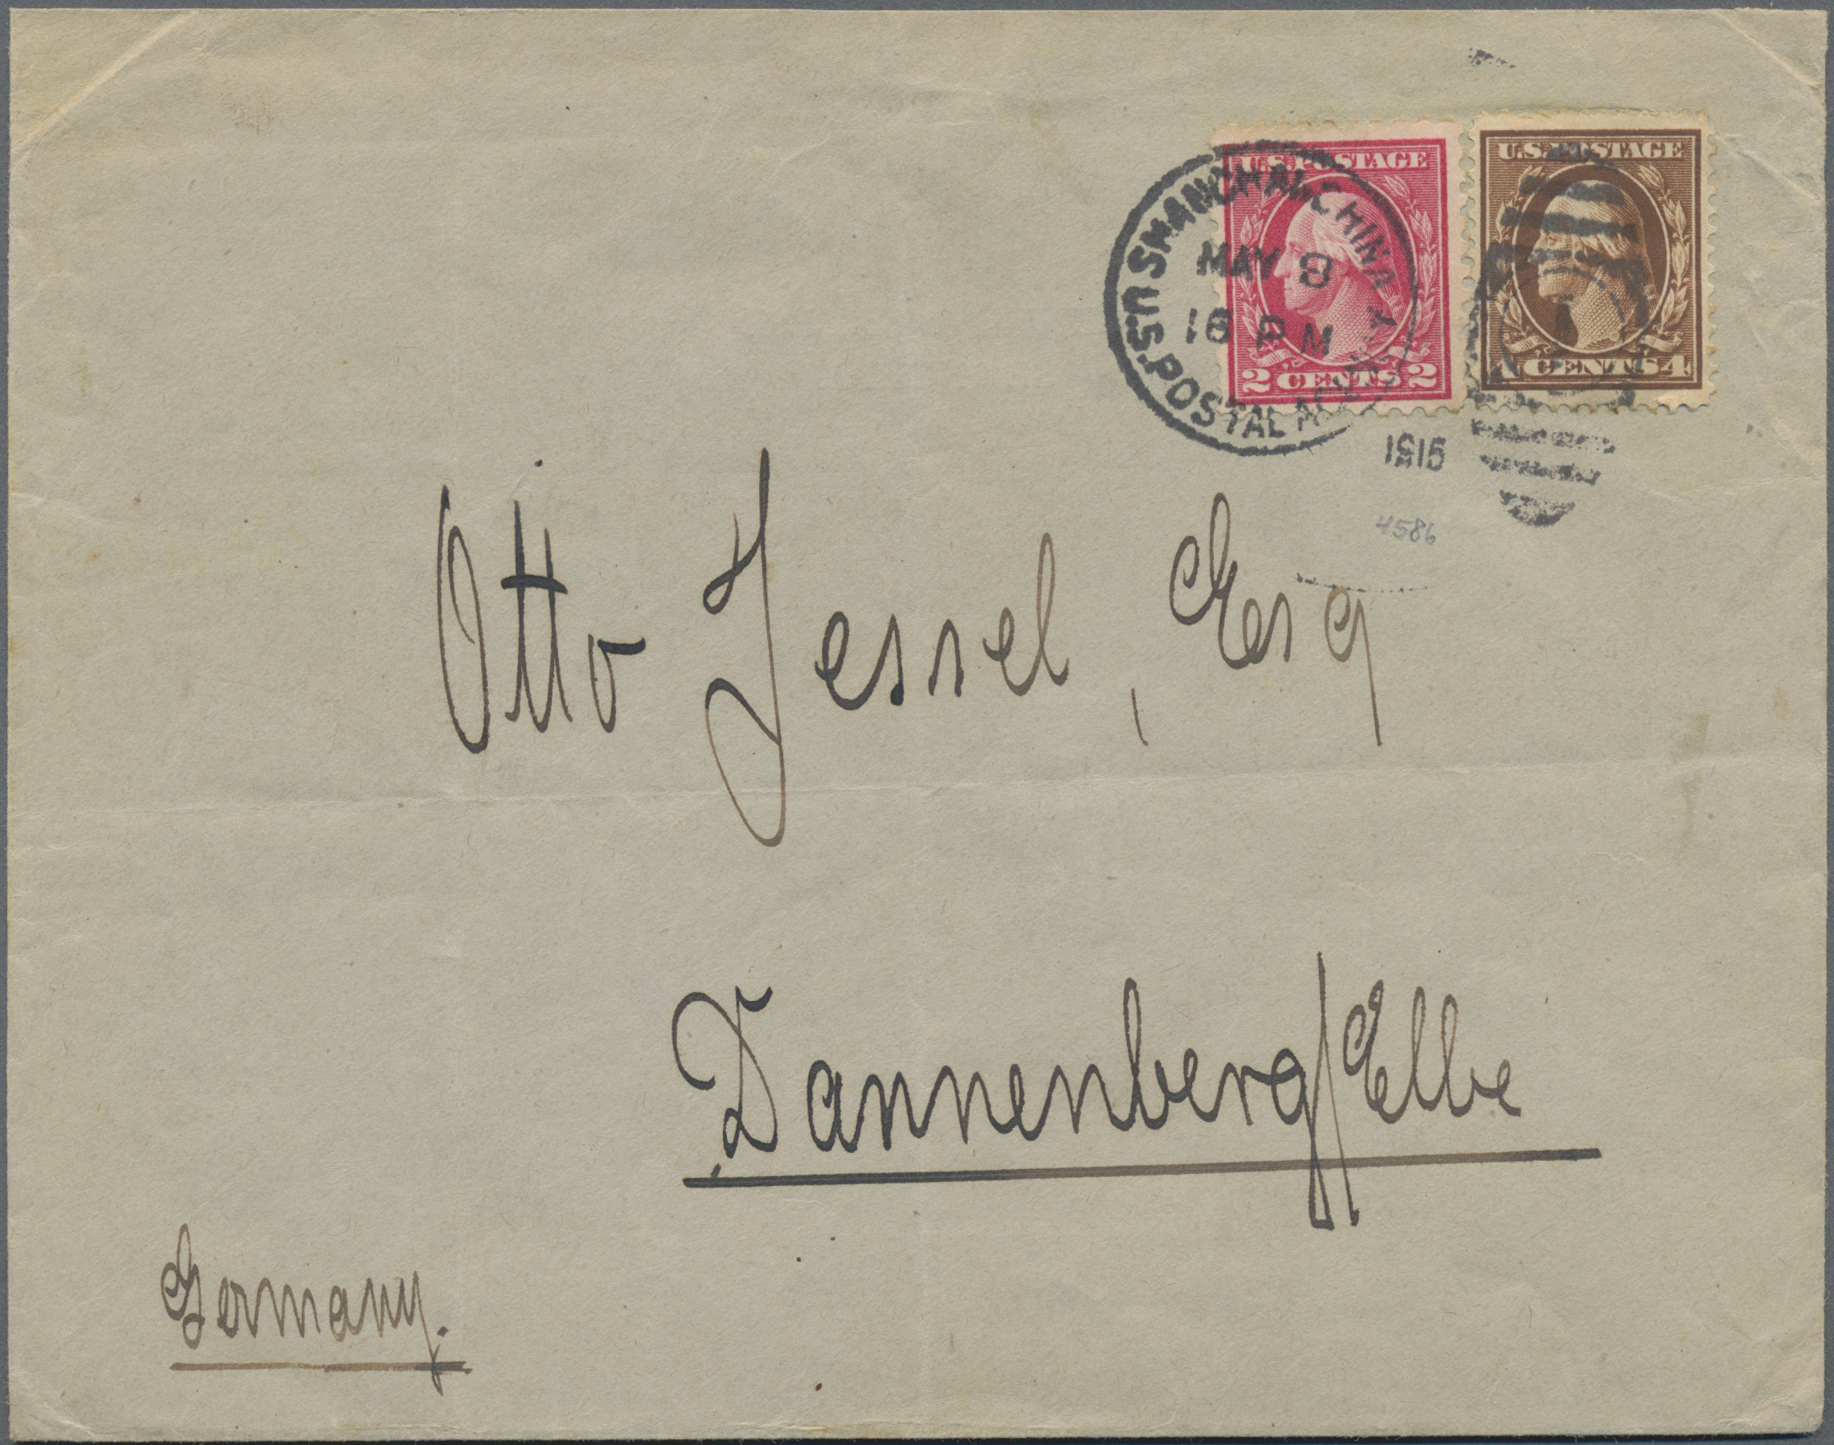 Lot 34592 - China - Fremde Postanstalten / Foreign Offices  -  Auktionshaus Christoph Gärtner GmbH & Co. KG Sale #44 Collections Germany